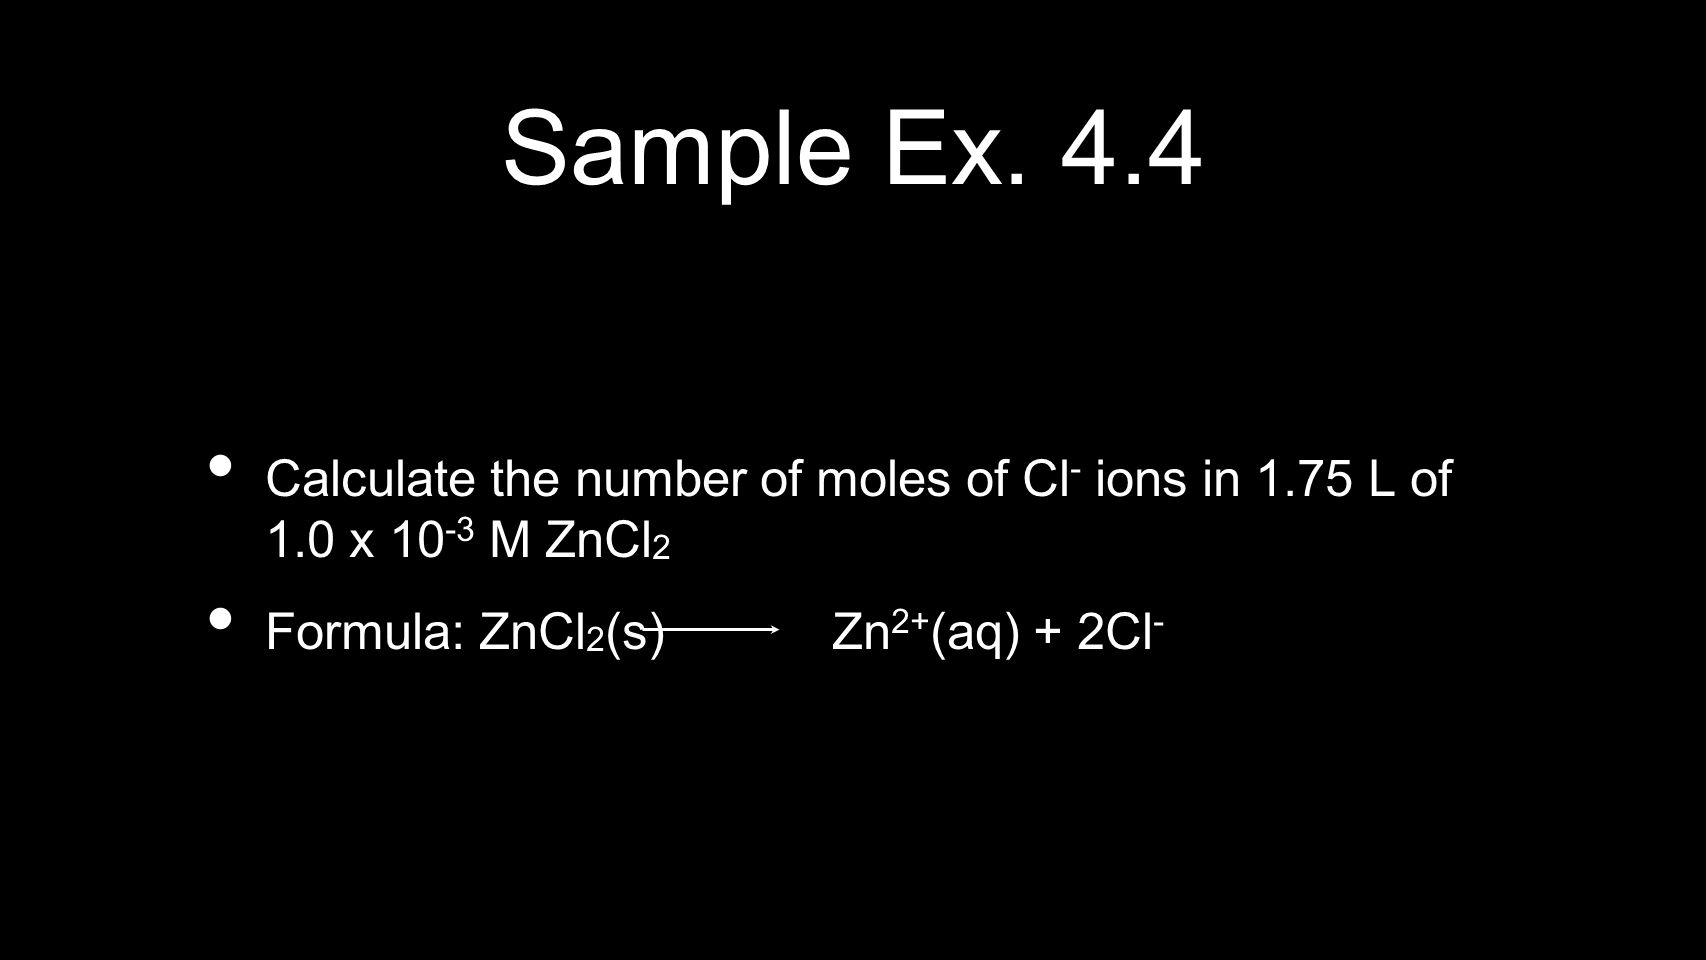 Sample Ex. 4.4 Calculate the number of moles of Cl- ions in 1.75 L of 1.0 x 10-3 M ZnCl2.